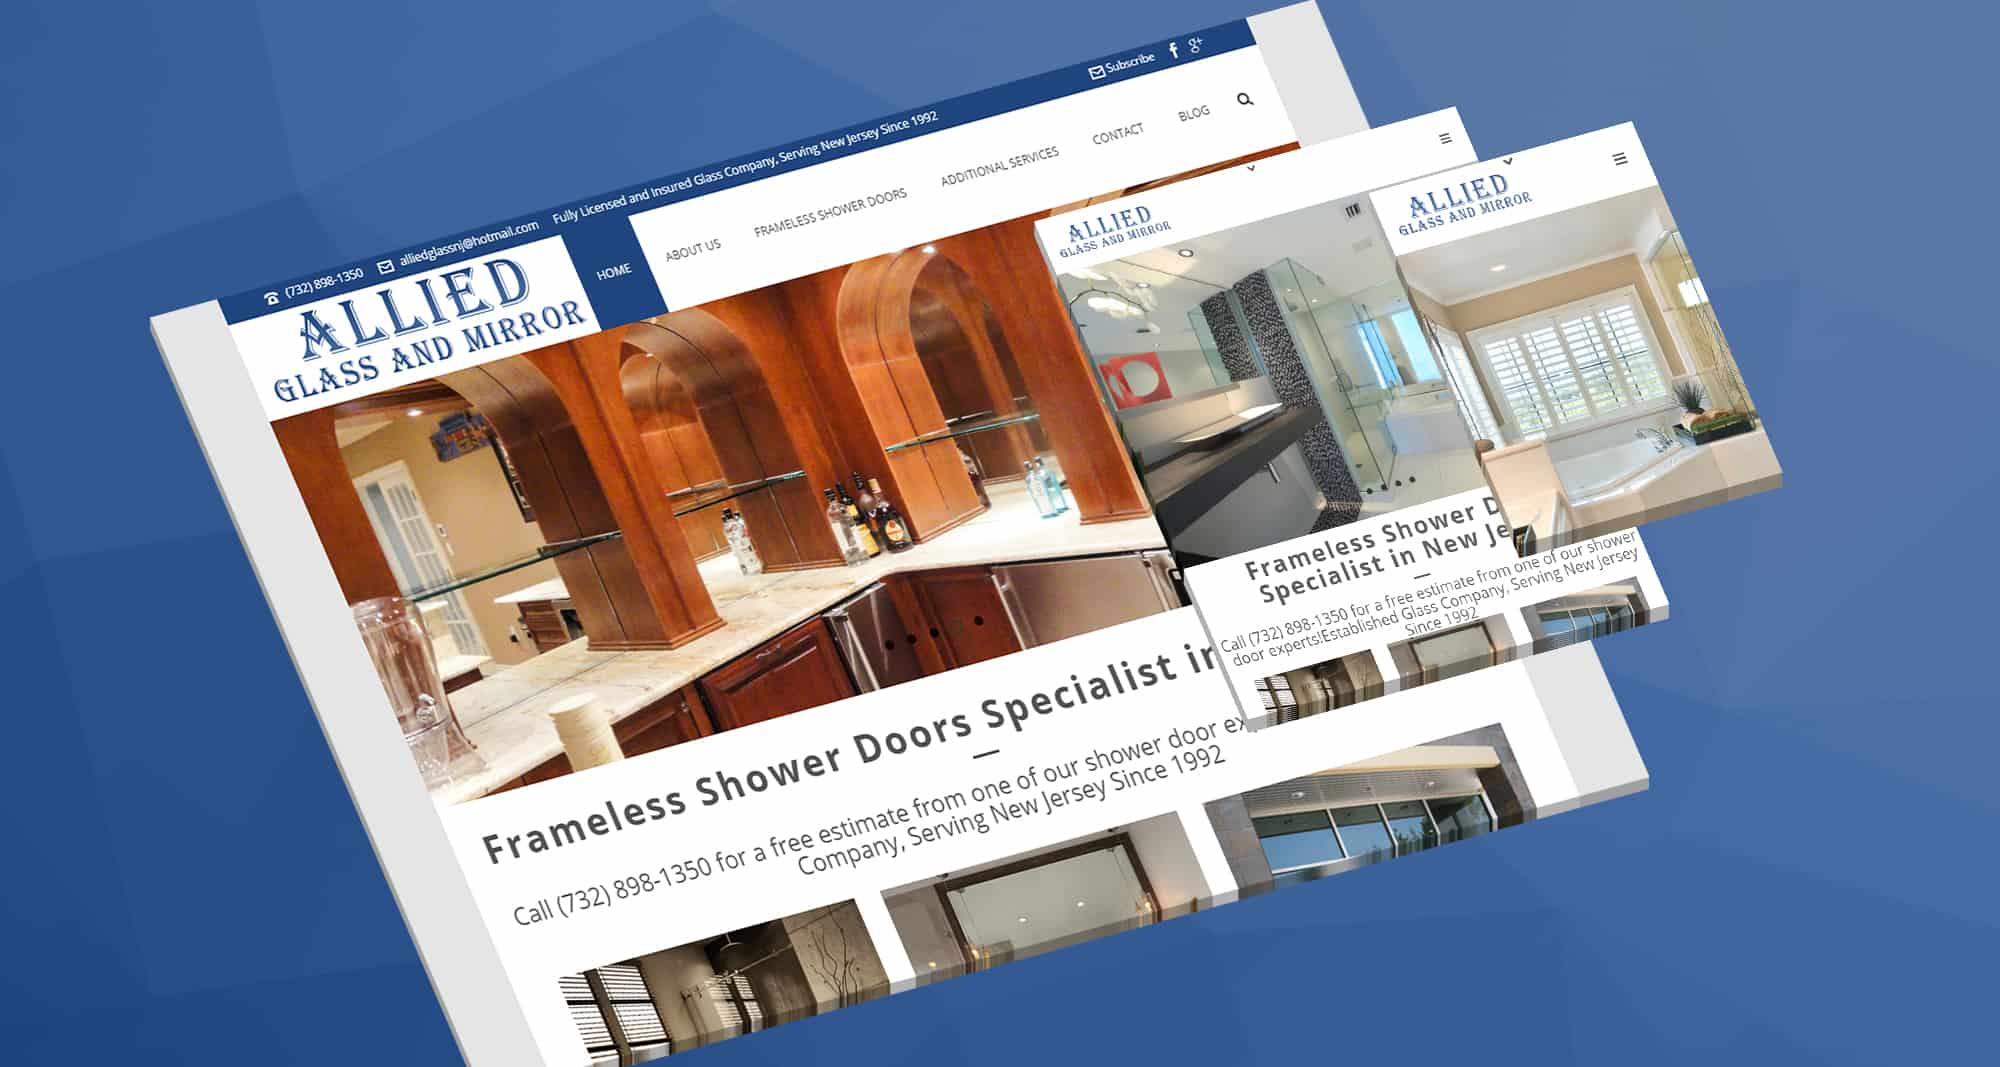 PPC Home Services: Allied Glass and Mirror Frameless Shower Doors- Specialist